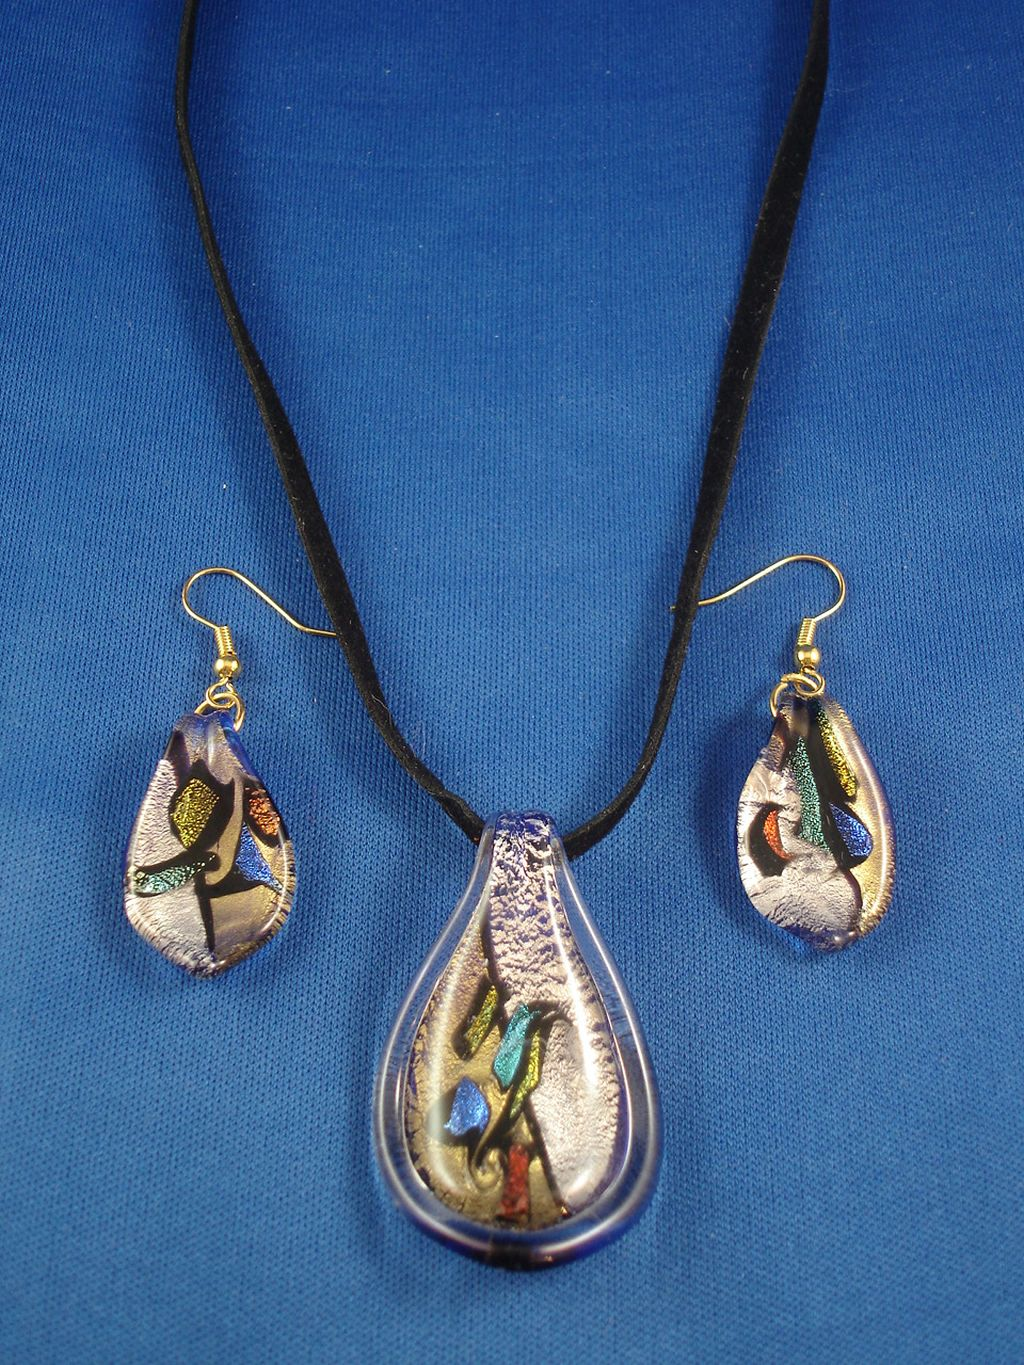 Summer Colors Drop Shape Stained Glass Pendant Necklace & Earrings